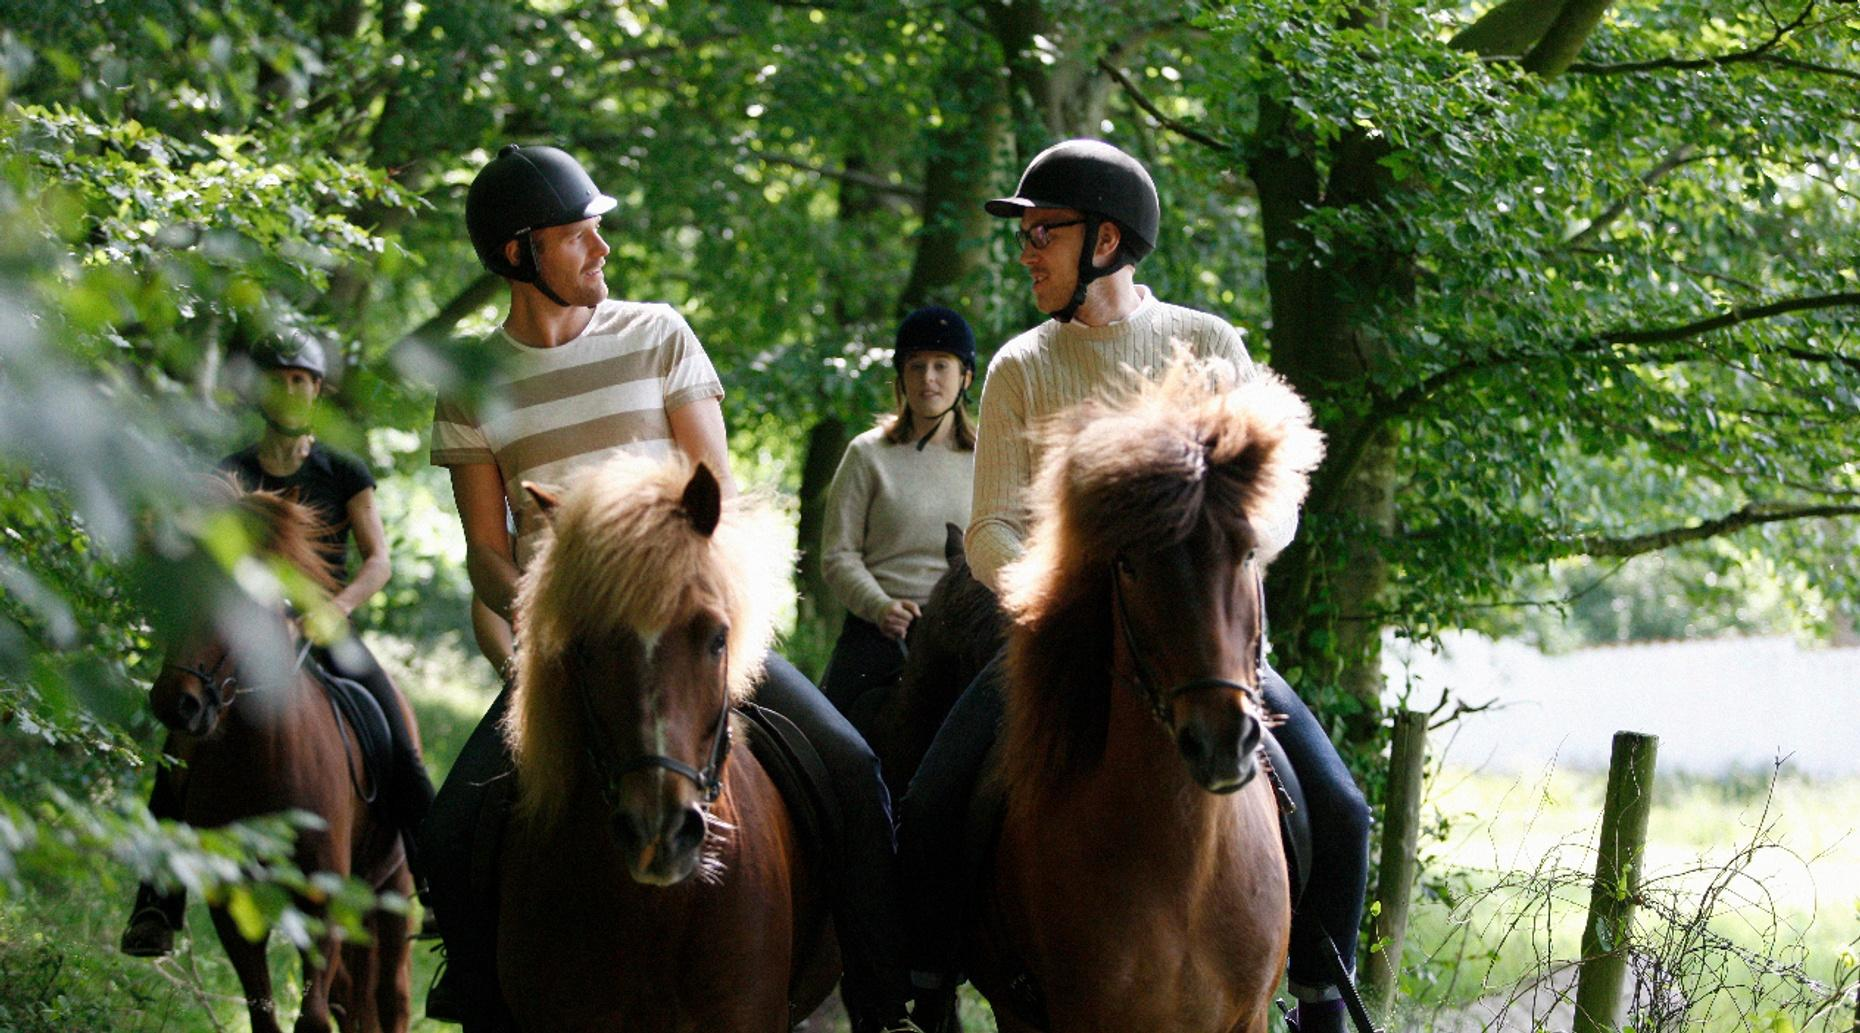 1-Hour Horseback Ride in Wunderlich Park